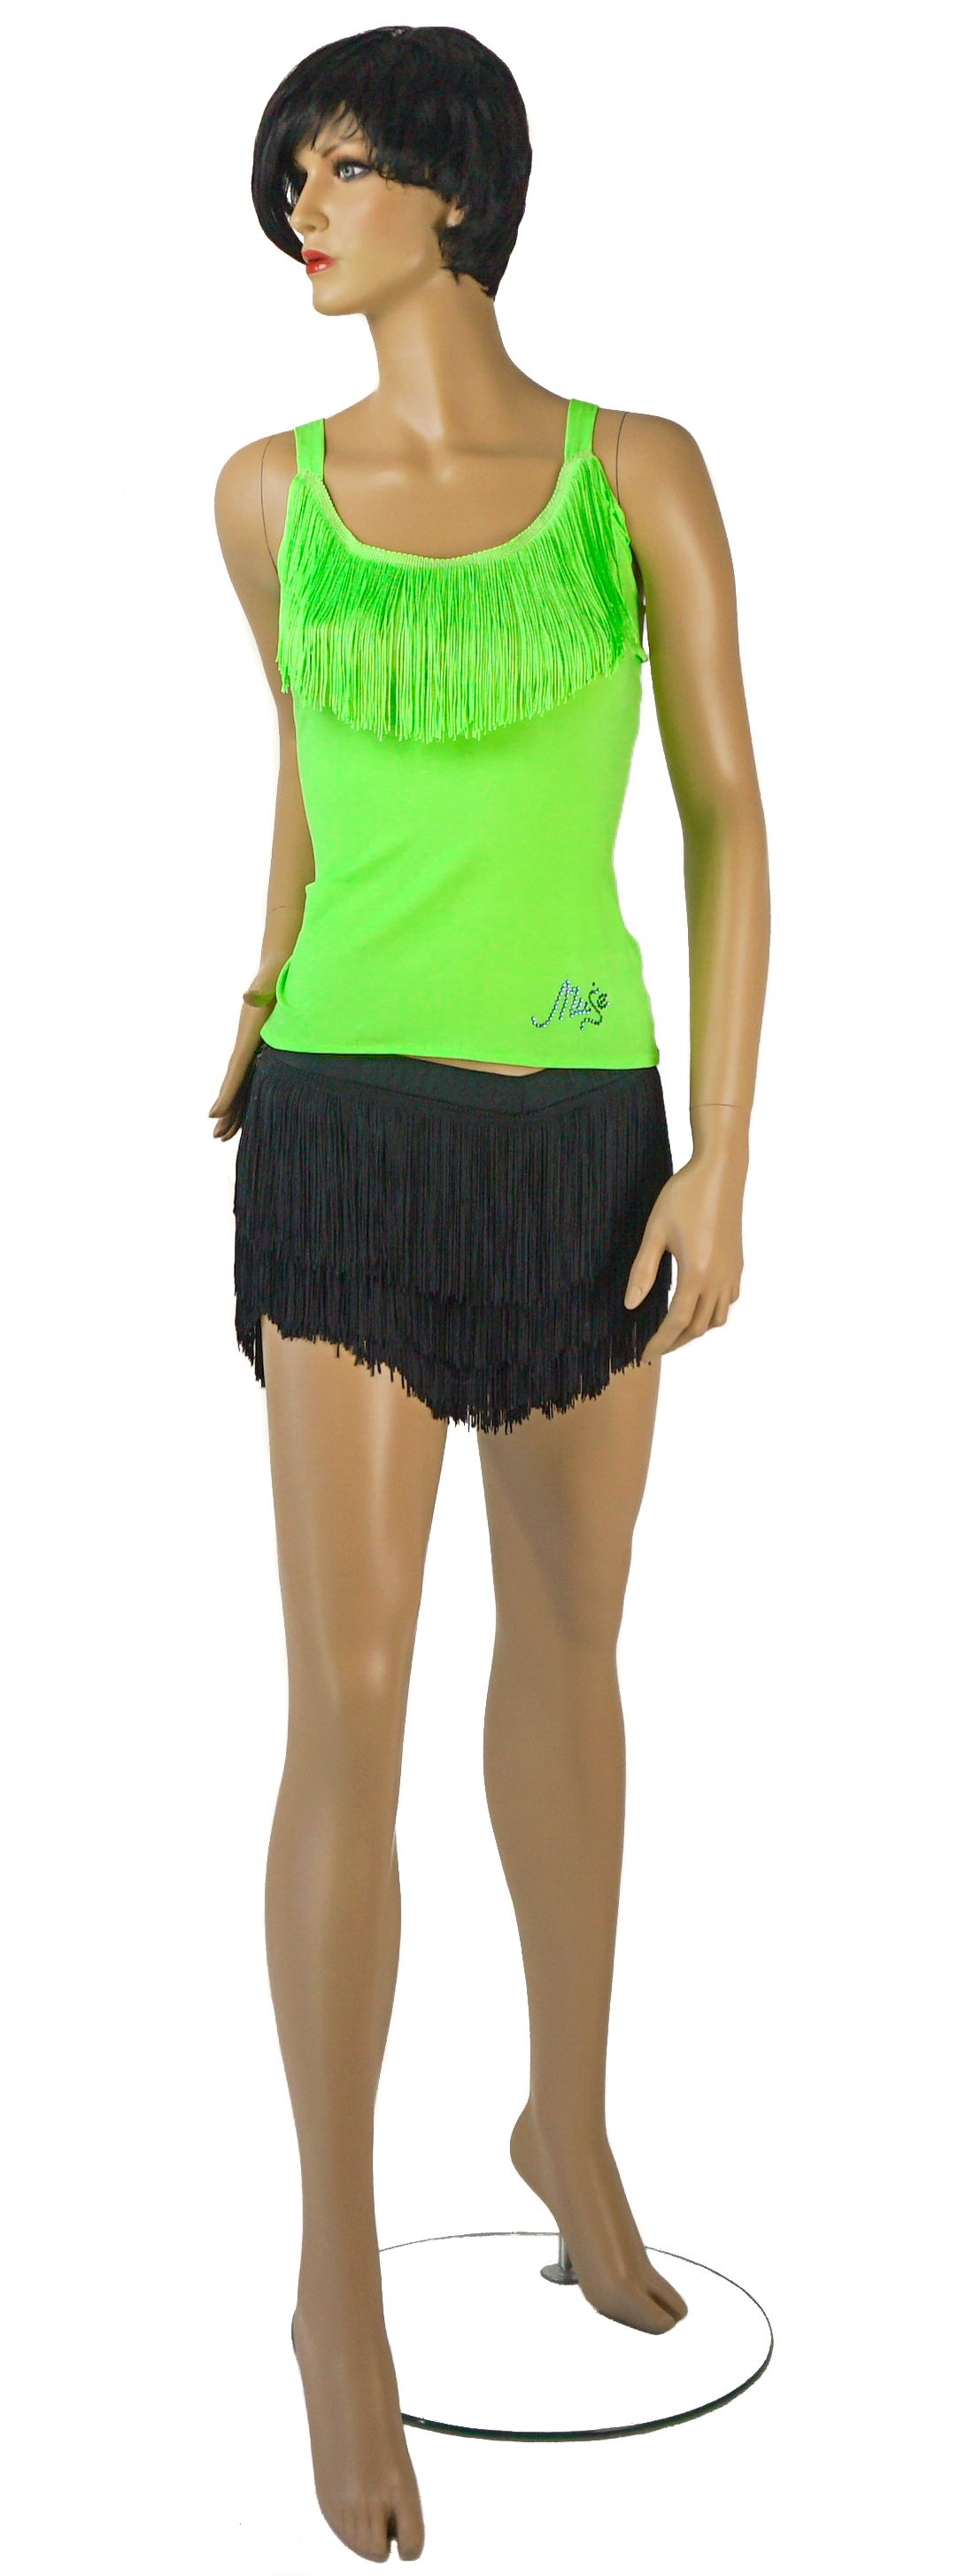 Top-$110 Fringe shorts-$170